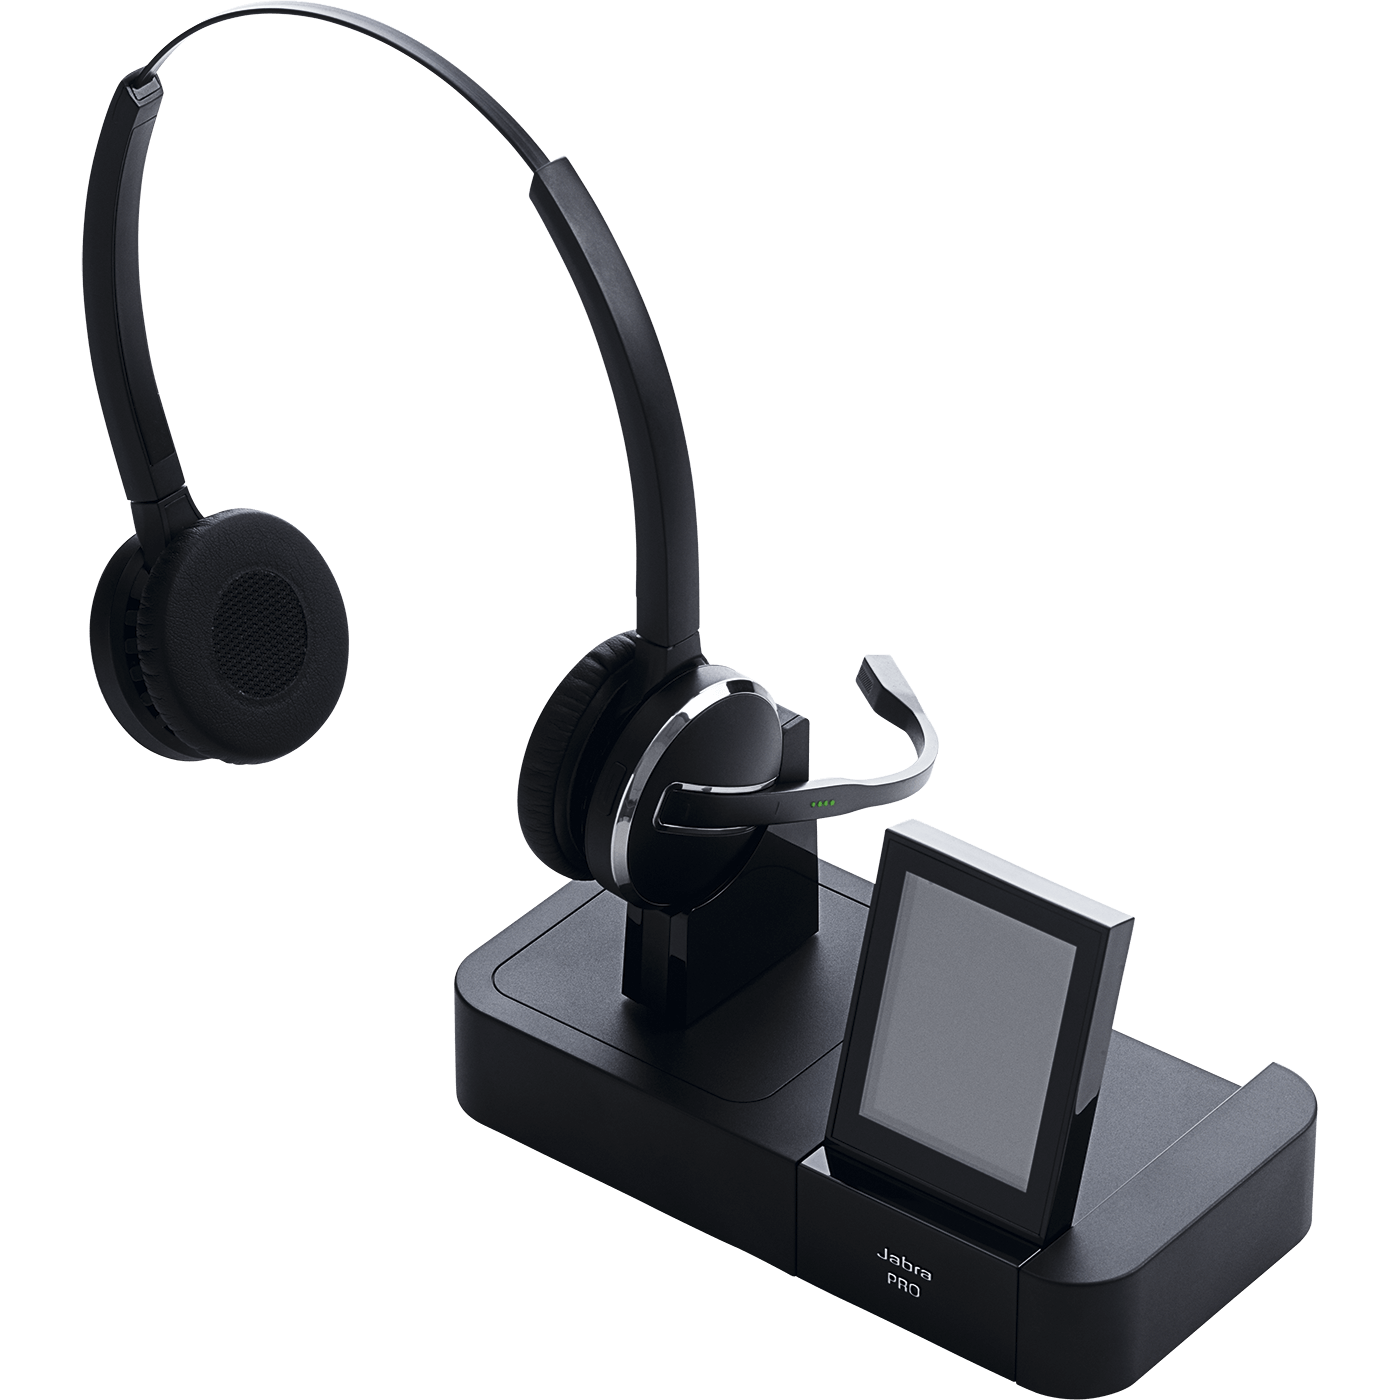 Bluetooth headphones wireless green - Jabra PRO 9460 Headset Overview